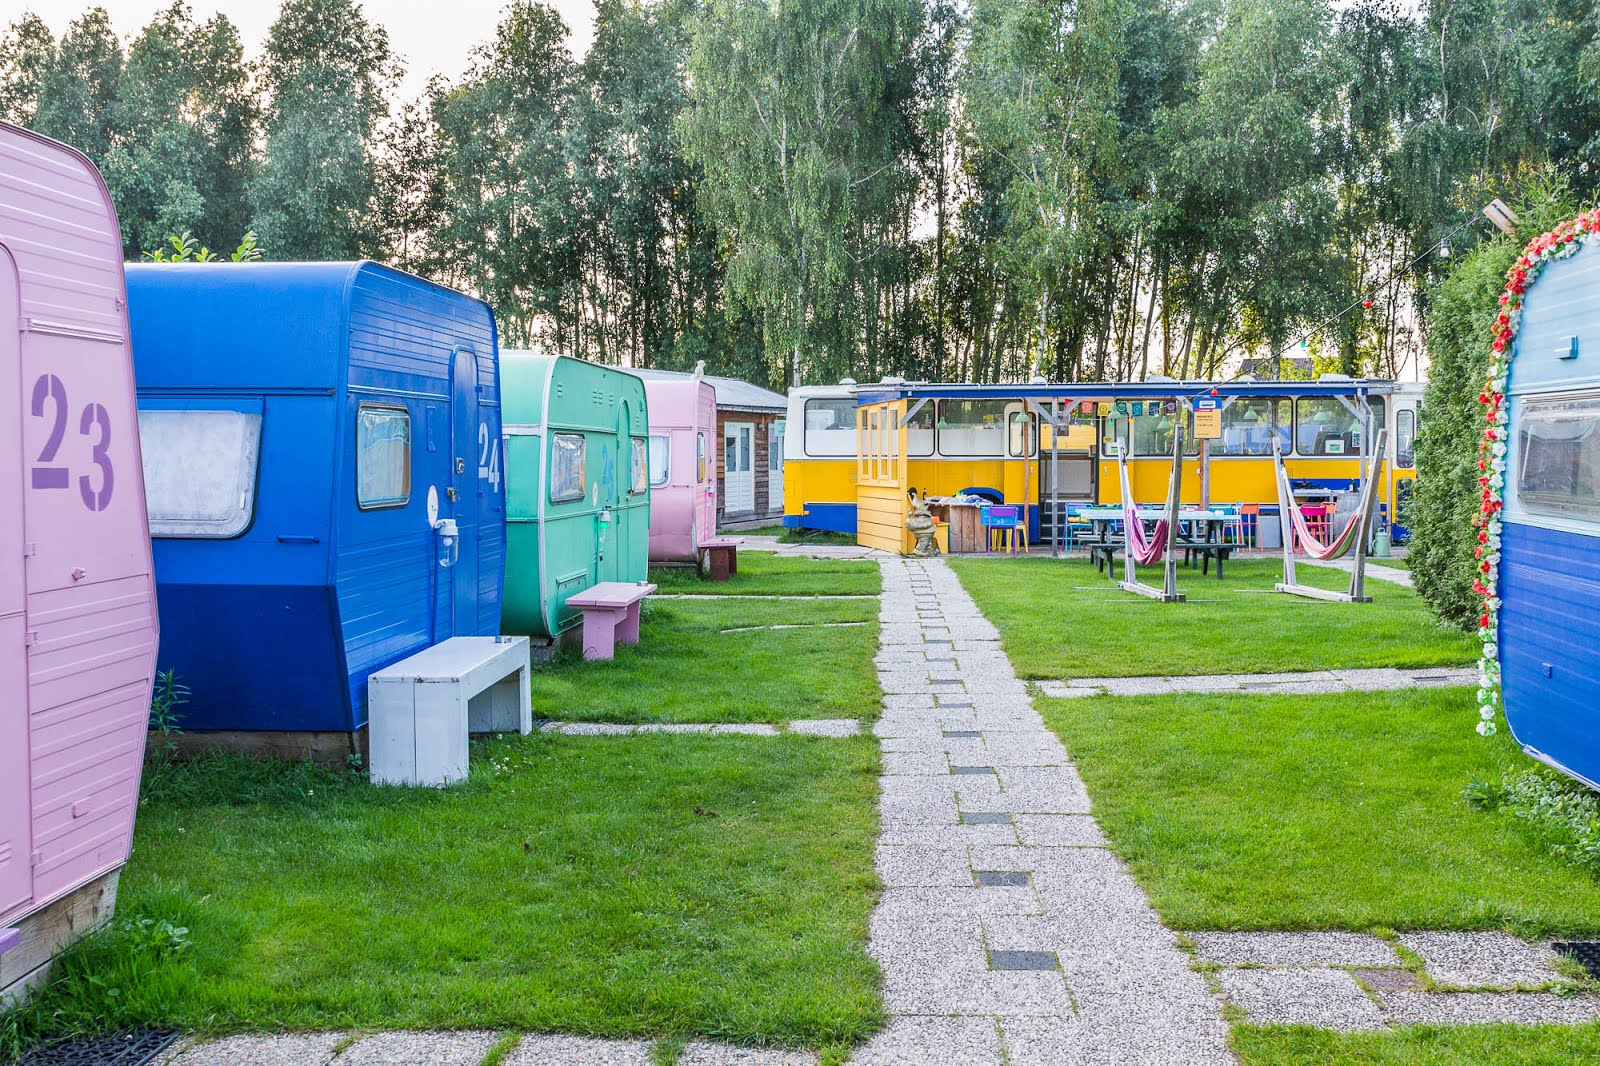 camping roulottes Amsterdam